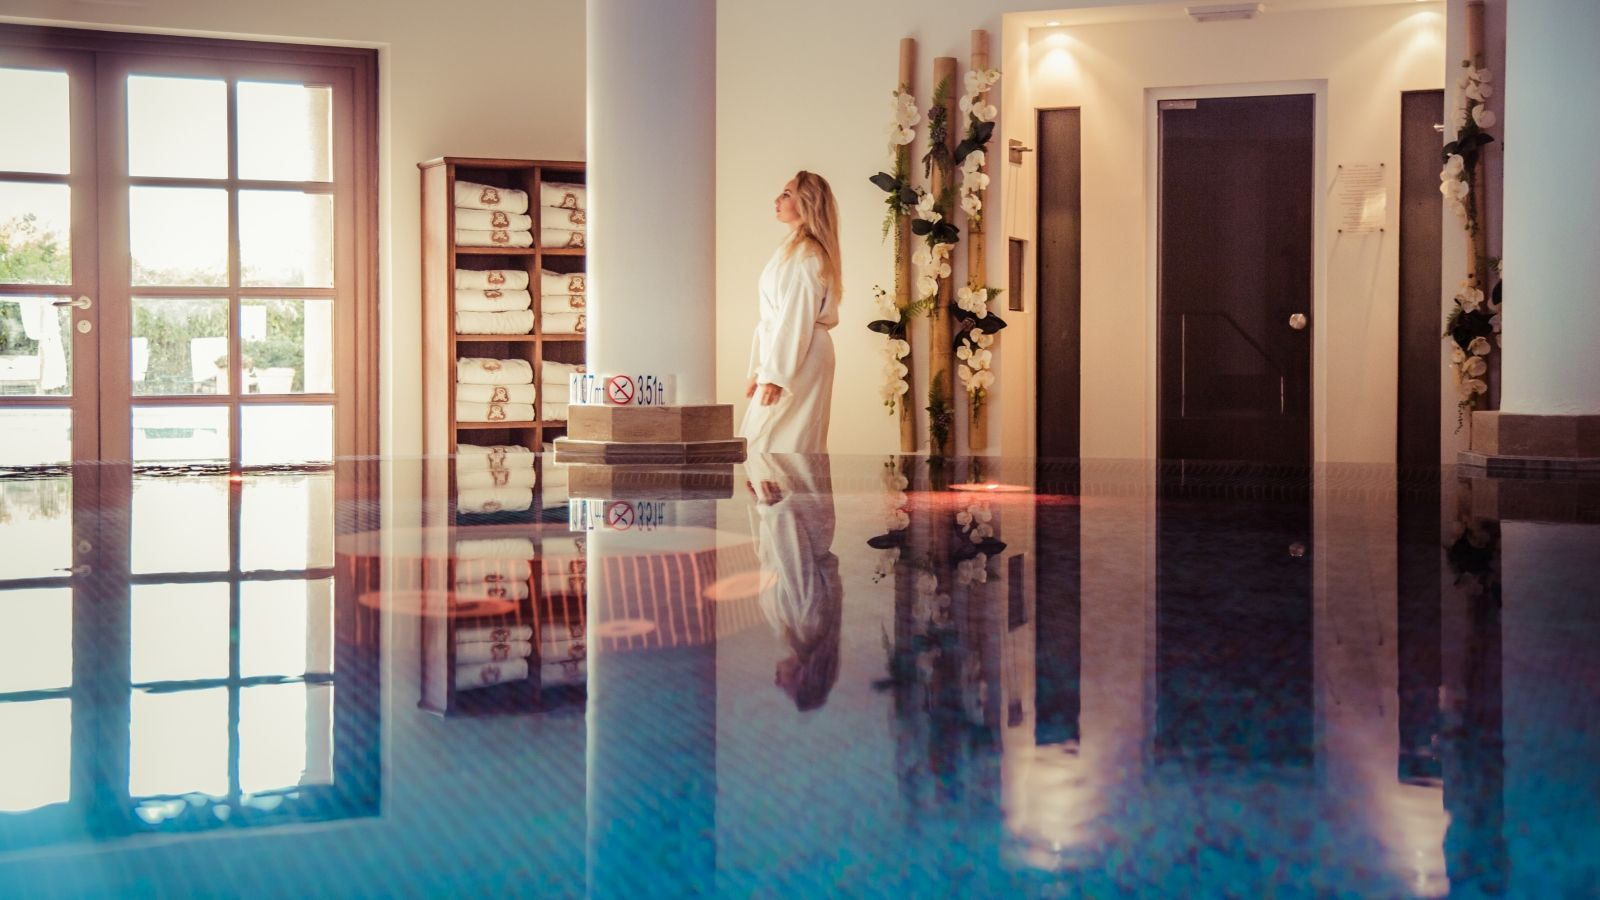 All you need for a relaxing Honeymoon at the Arabella Spa at the St. Regis Resort Mardavall